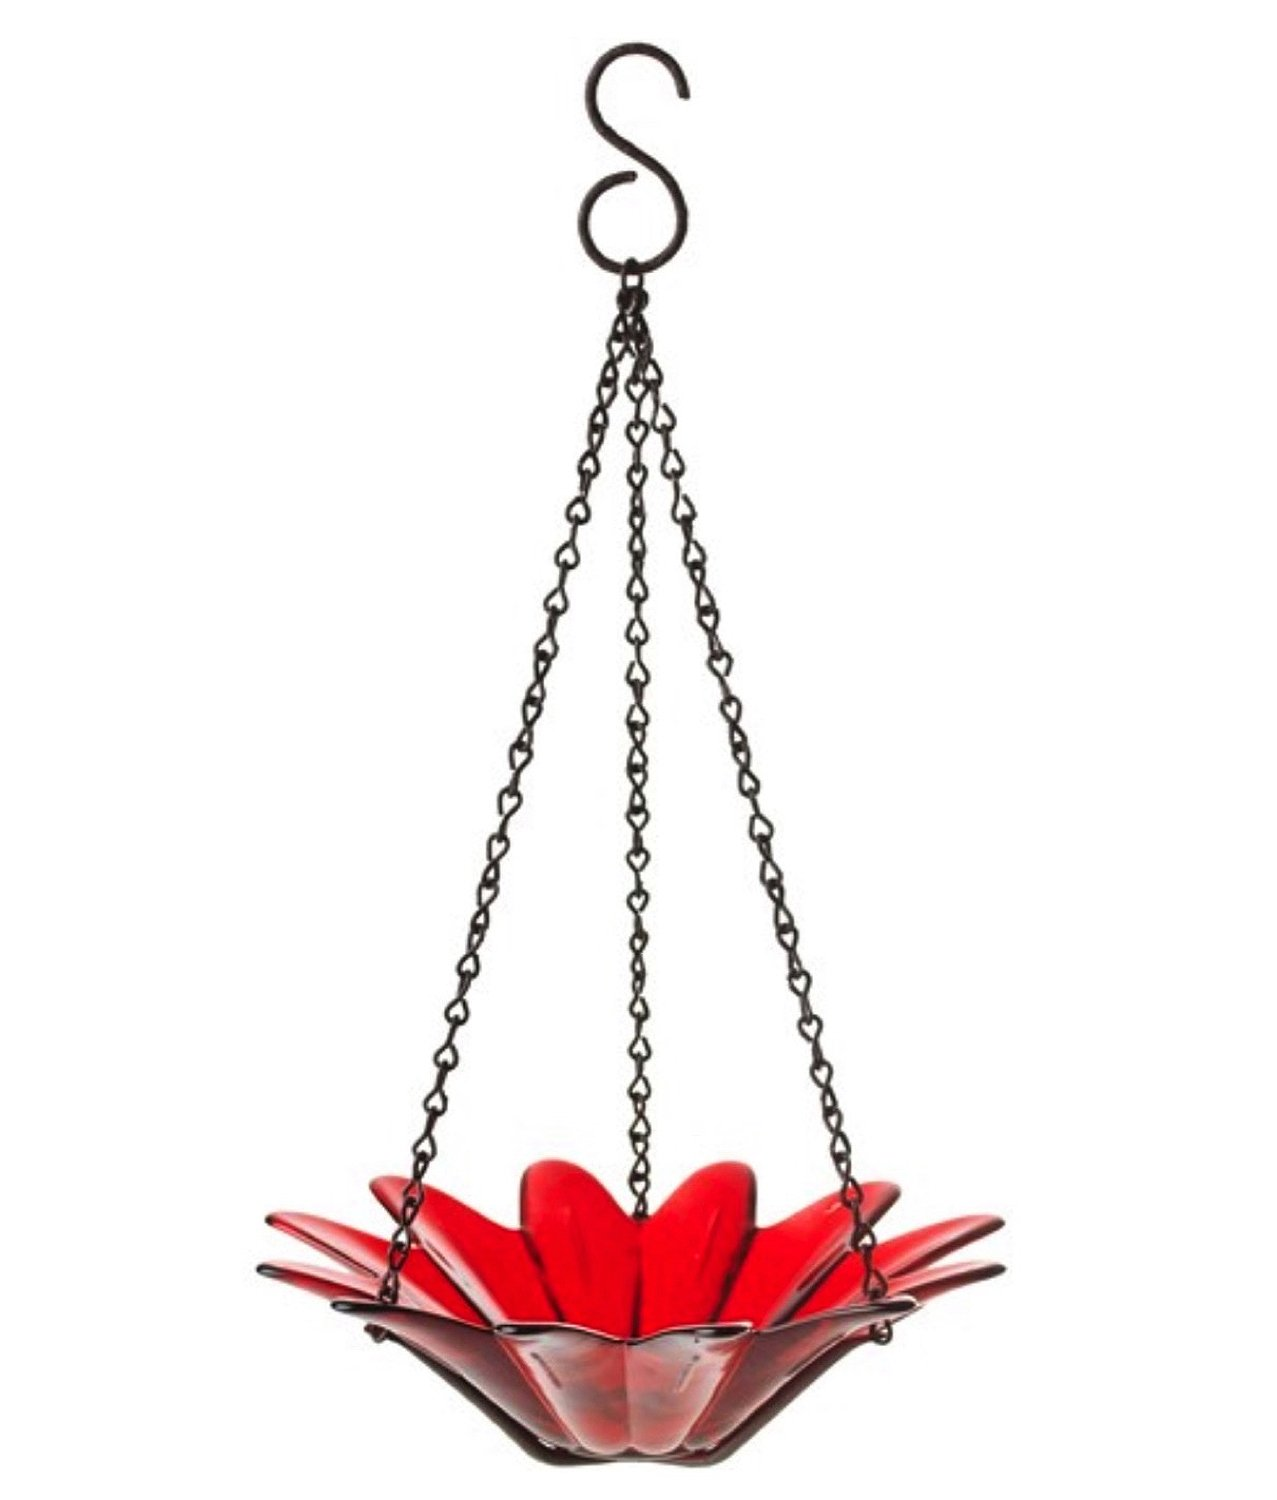 Hanging Colored Glass Bowl Bird Feeder Garden Home Accent 1pc G97 Red Recycled Eco-Friendly Colored Glass Bowl with Black Powder Coated Chain for Garden, Kitchen and/or Home Decor.